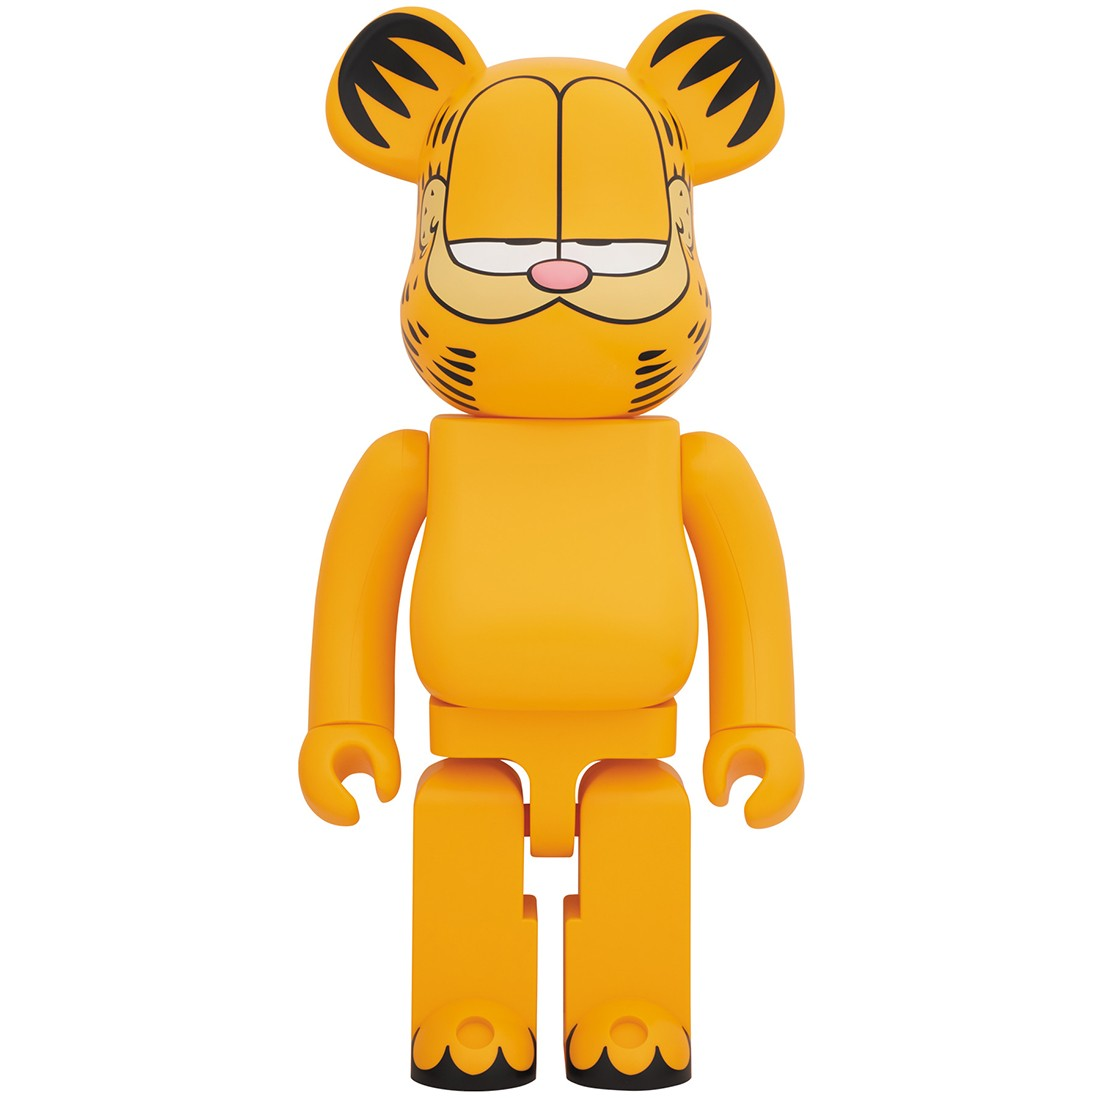 Medicom Garfield 1000% Bearbrick Figure (yellow)